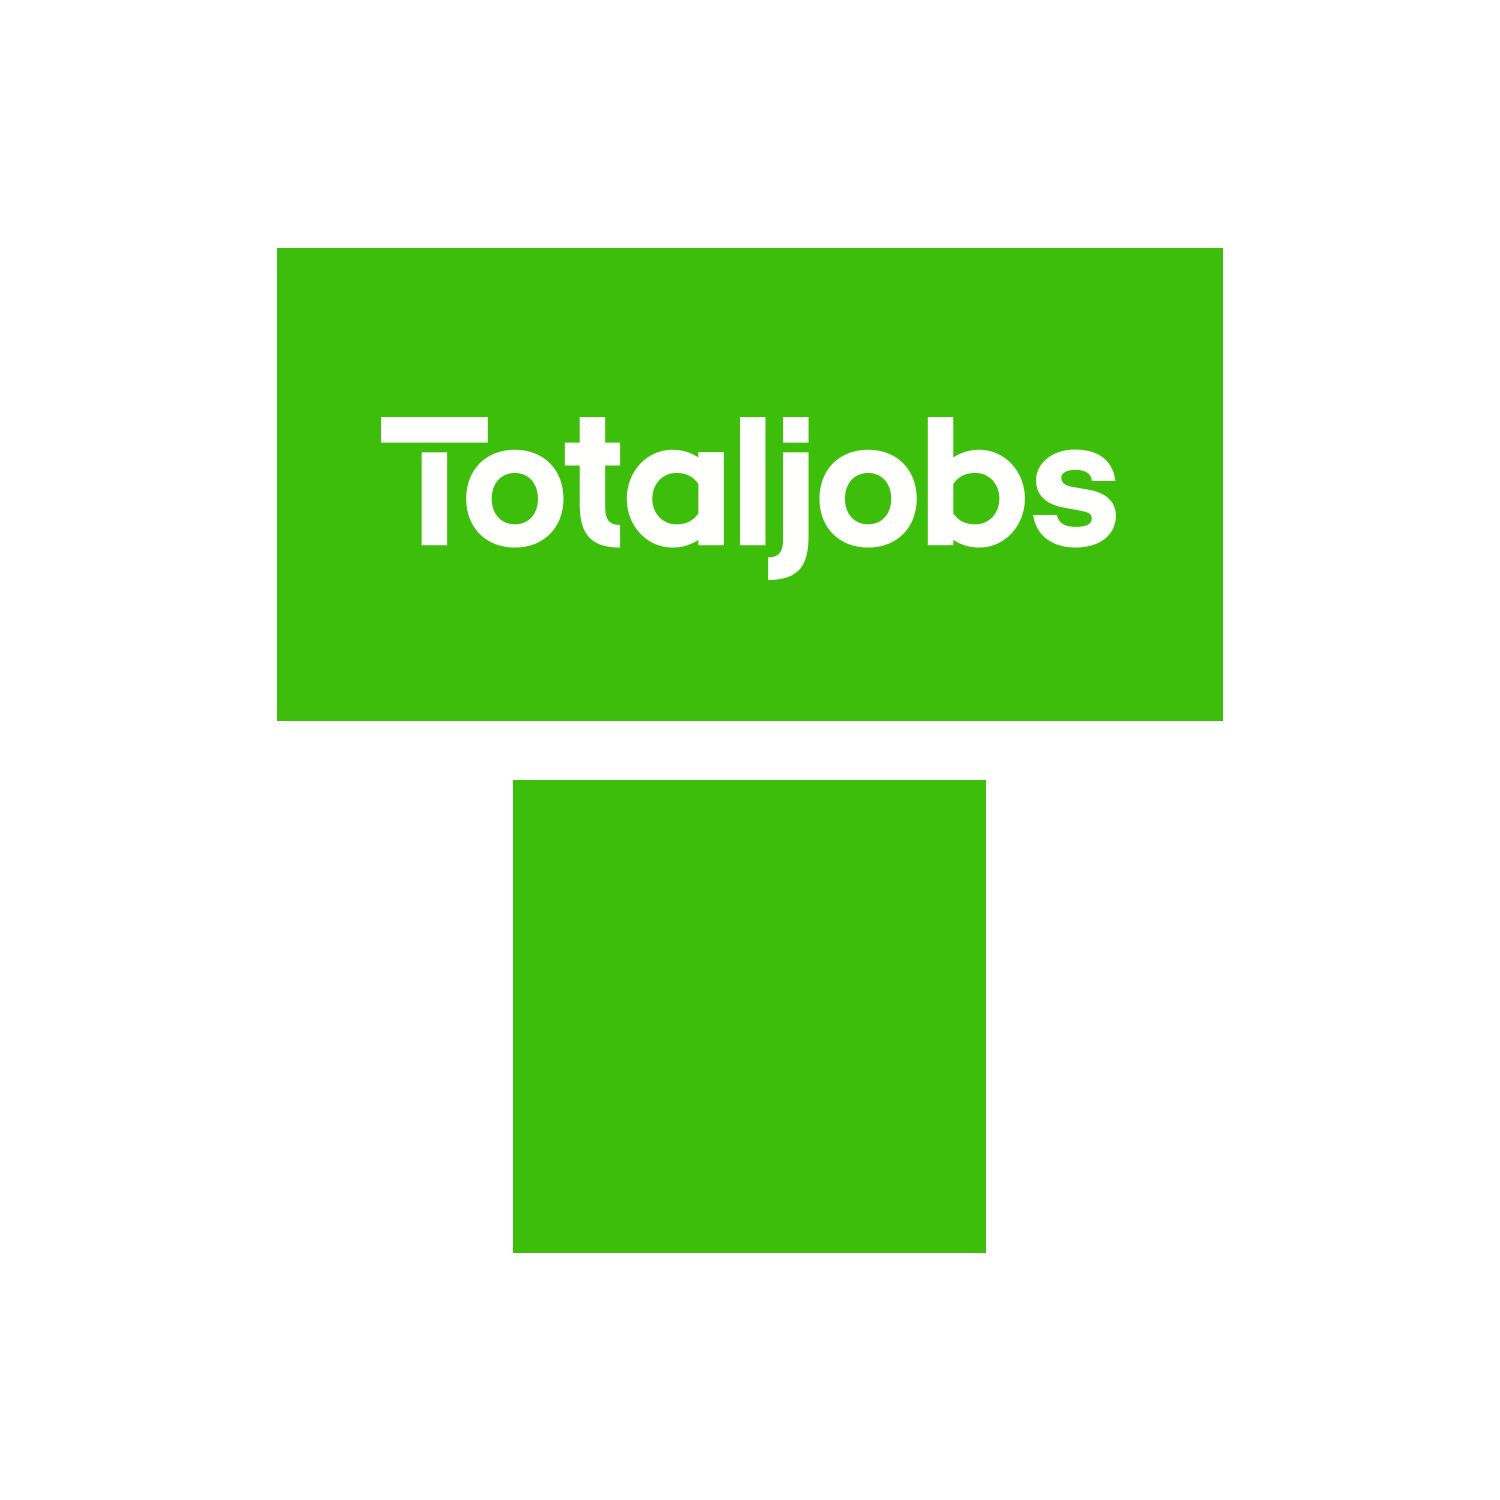 Seo specialist in Hull (HU10) | Freshtech IT - totaljobs